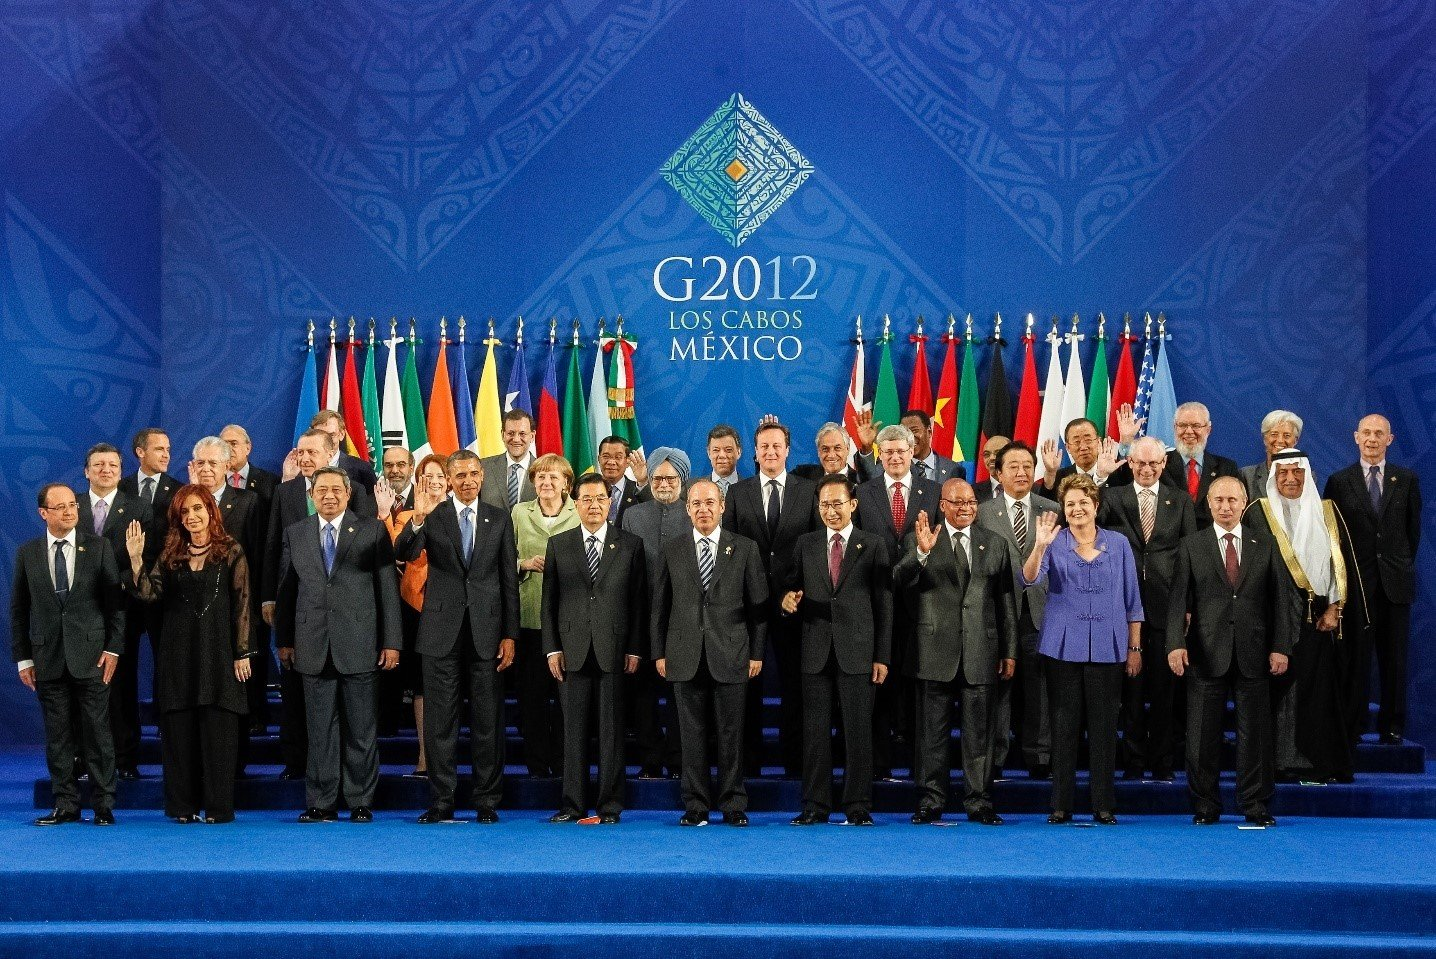 The G20 prepares the throne of Satan